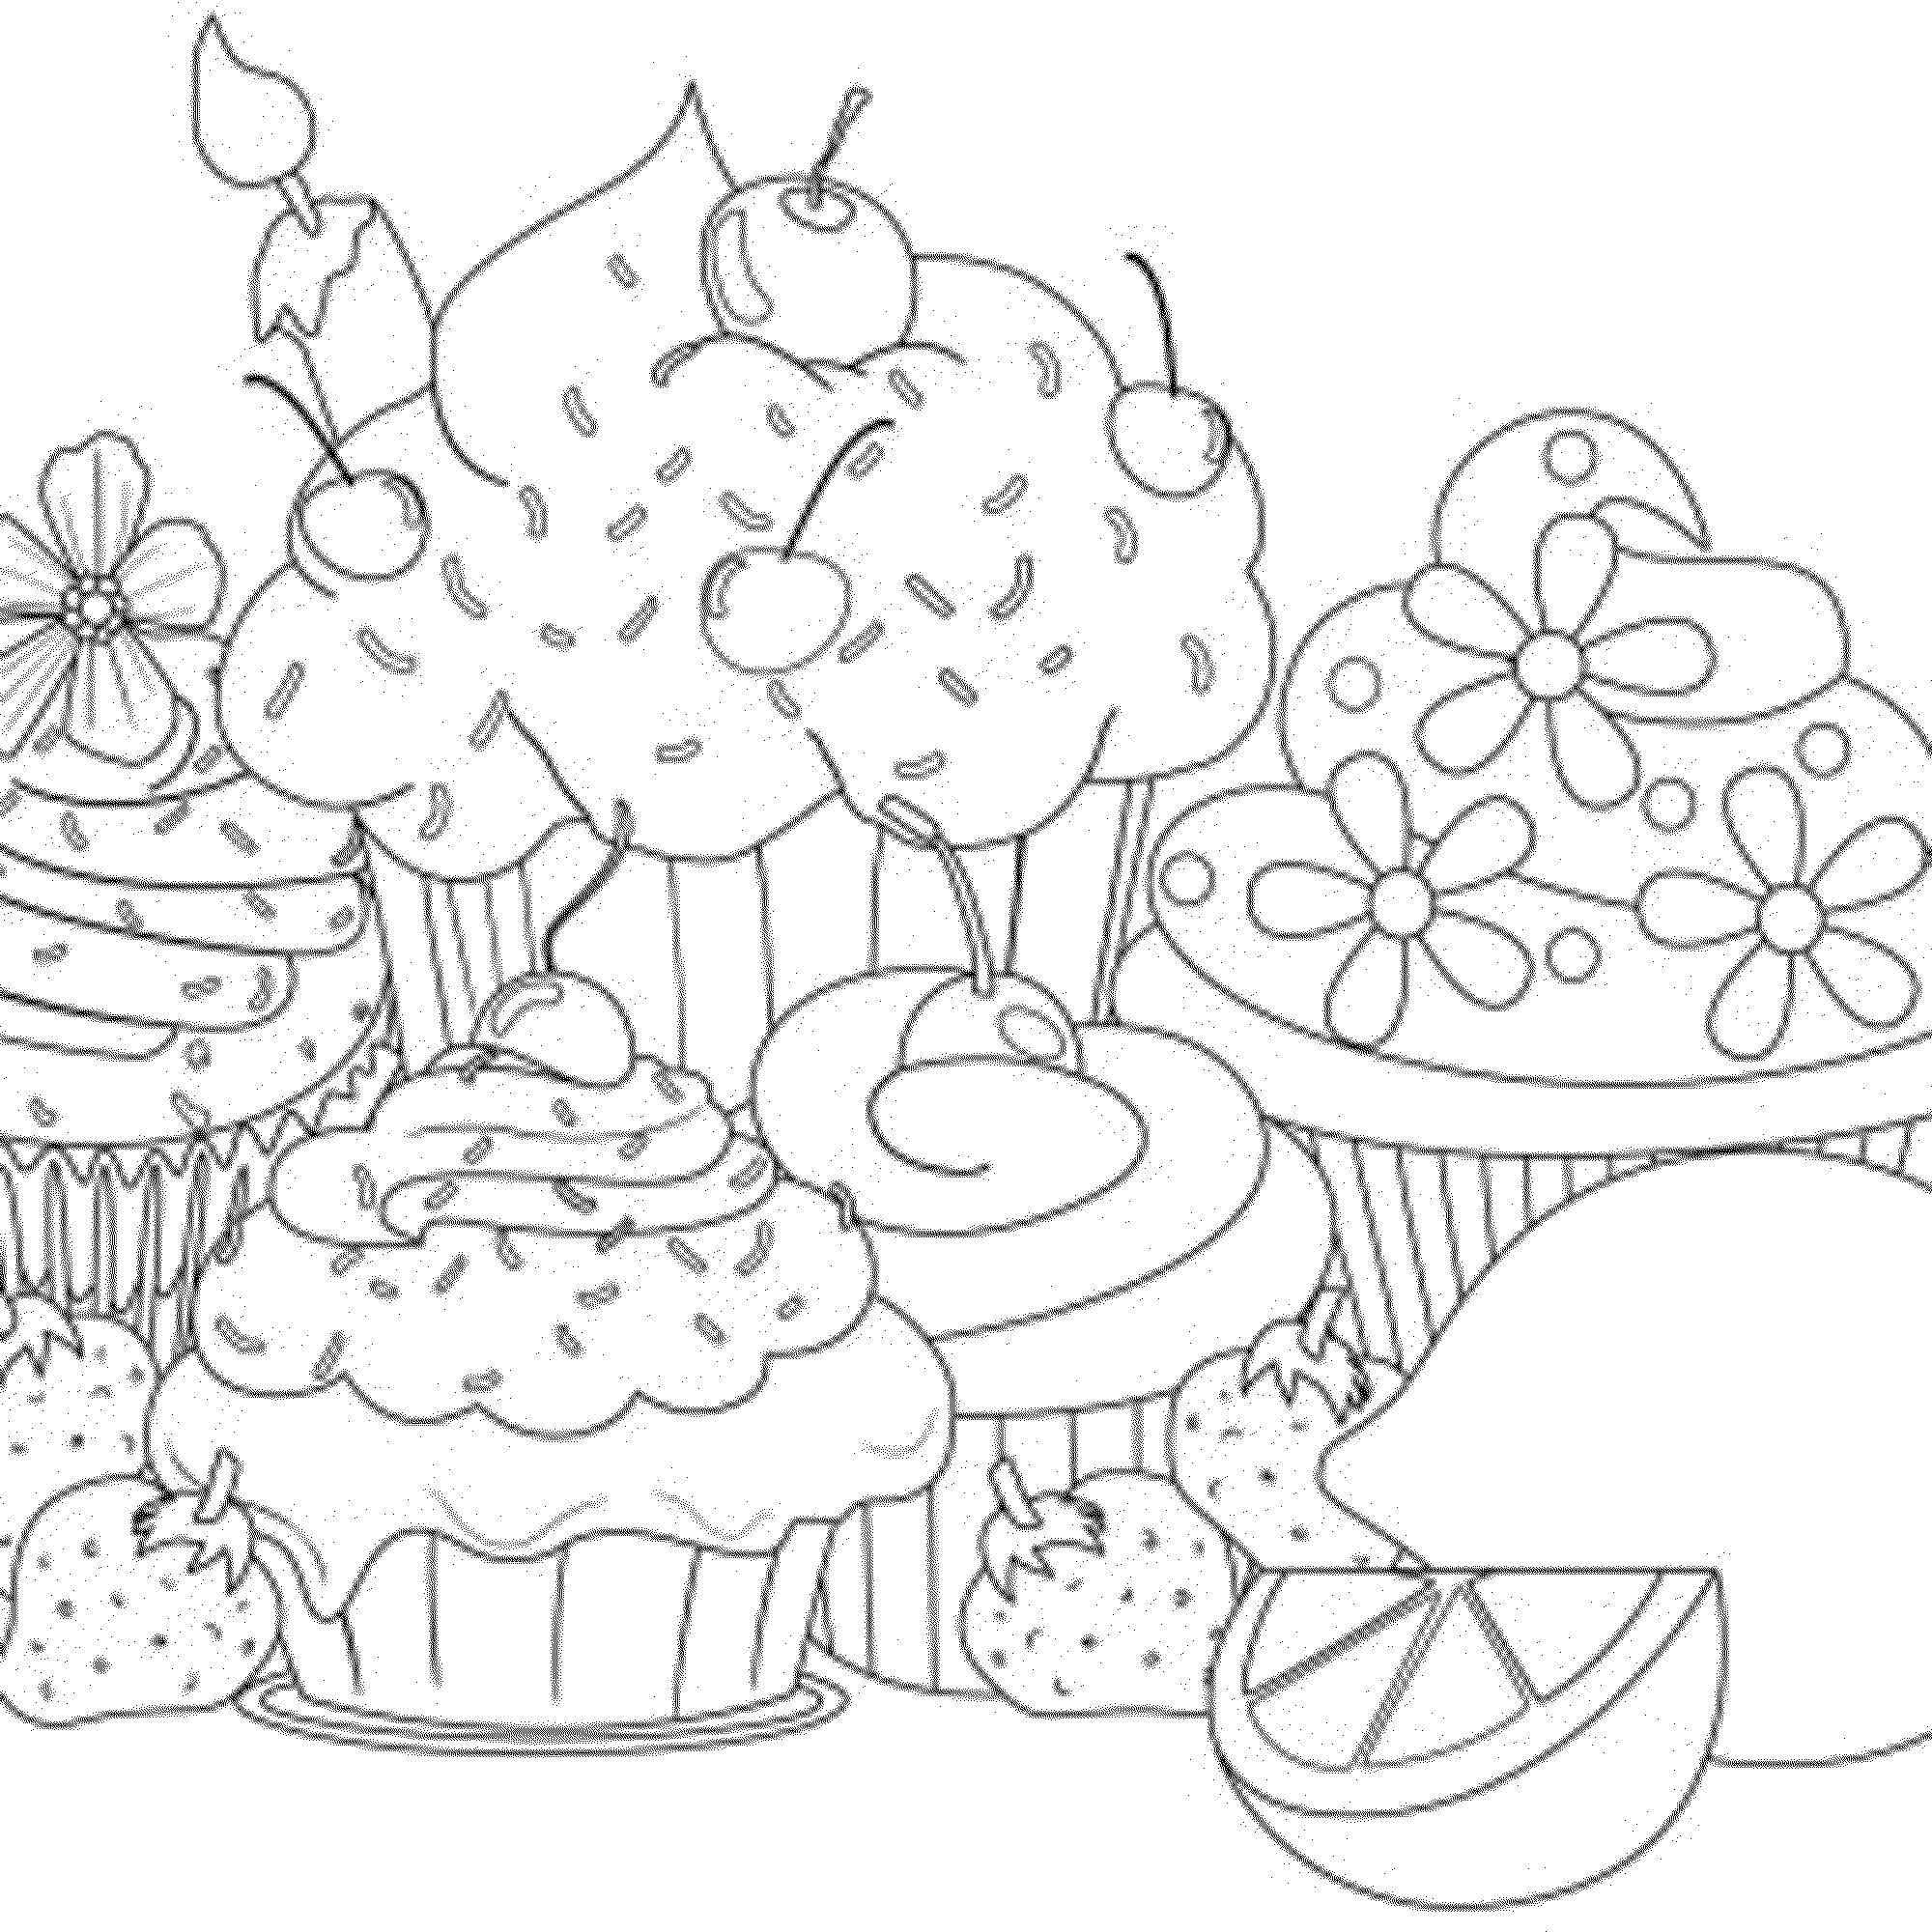 2000x2000 Cupcakes Coloring Pages